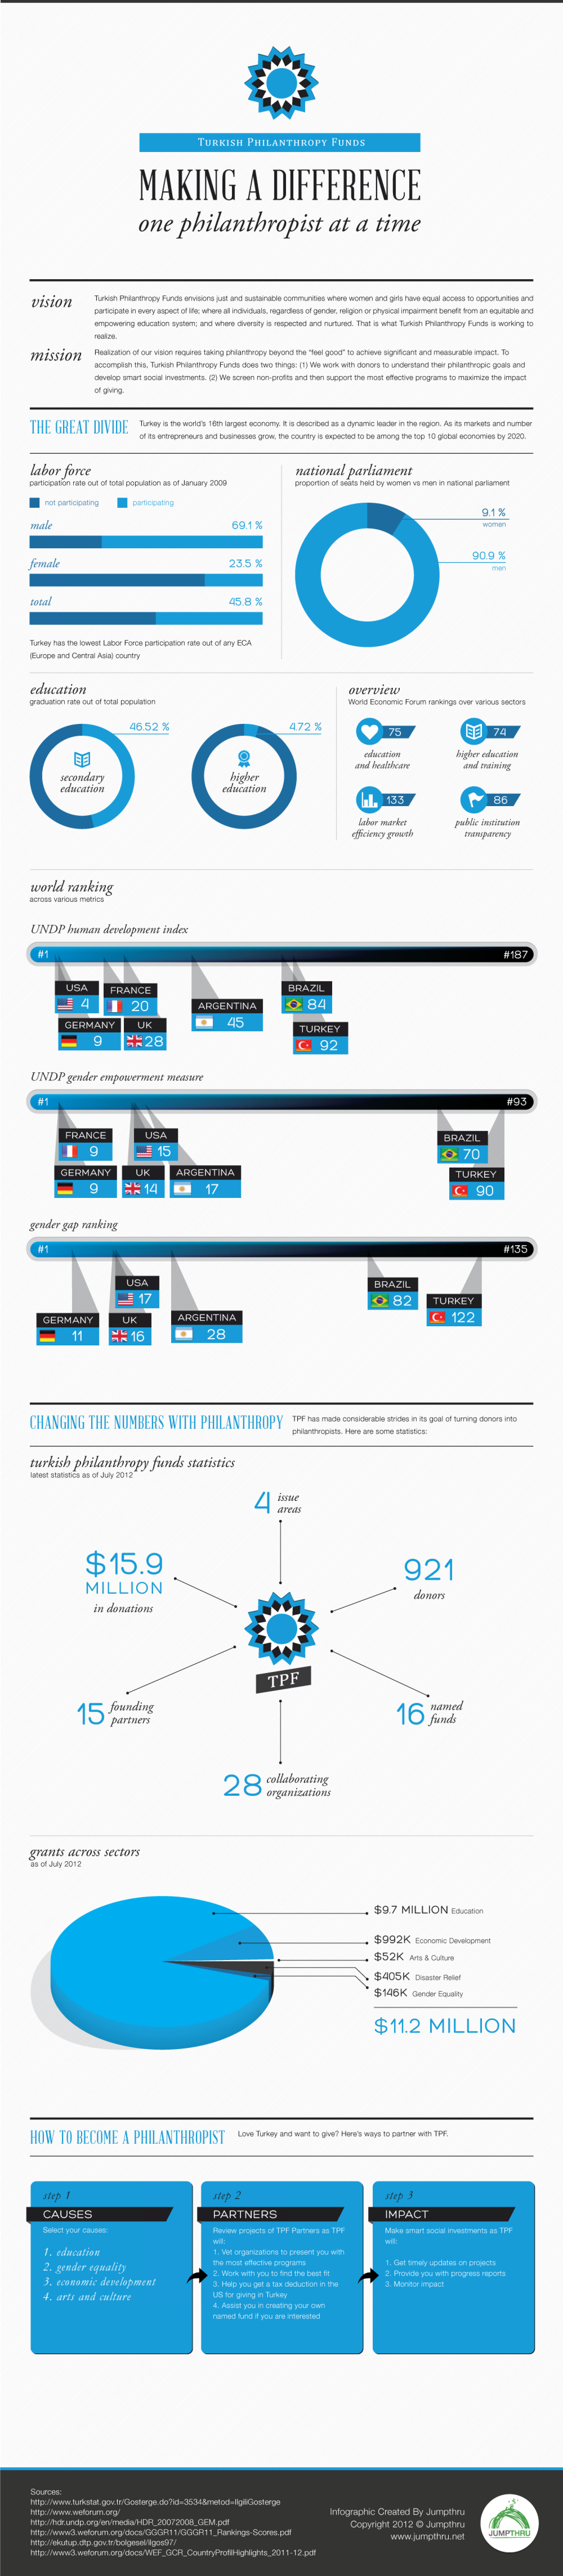 Social Growth in Turkey Infographic